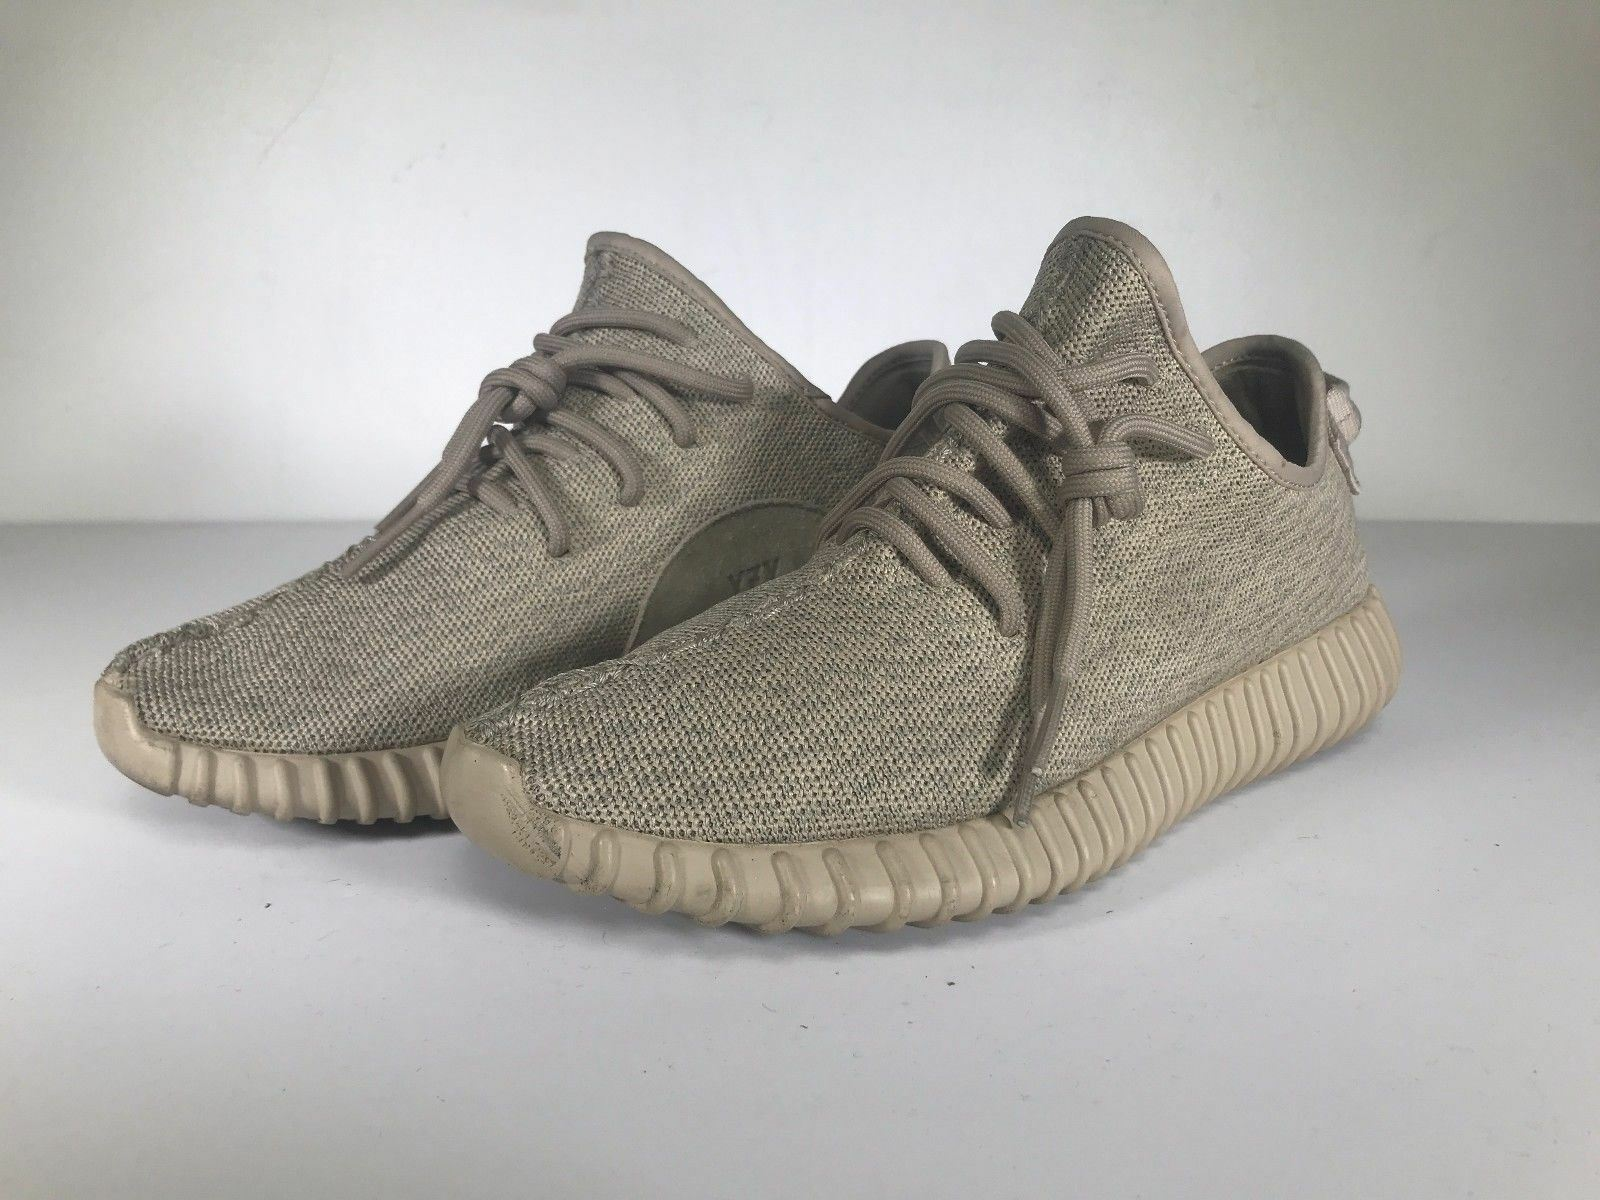 452f3e58efec2 Pre-Owned Adidas Yeezy 350 Boost Oxford Tan Sneakers Size 8.5 ...